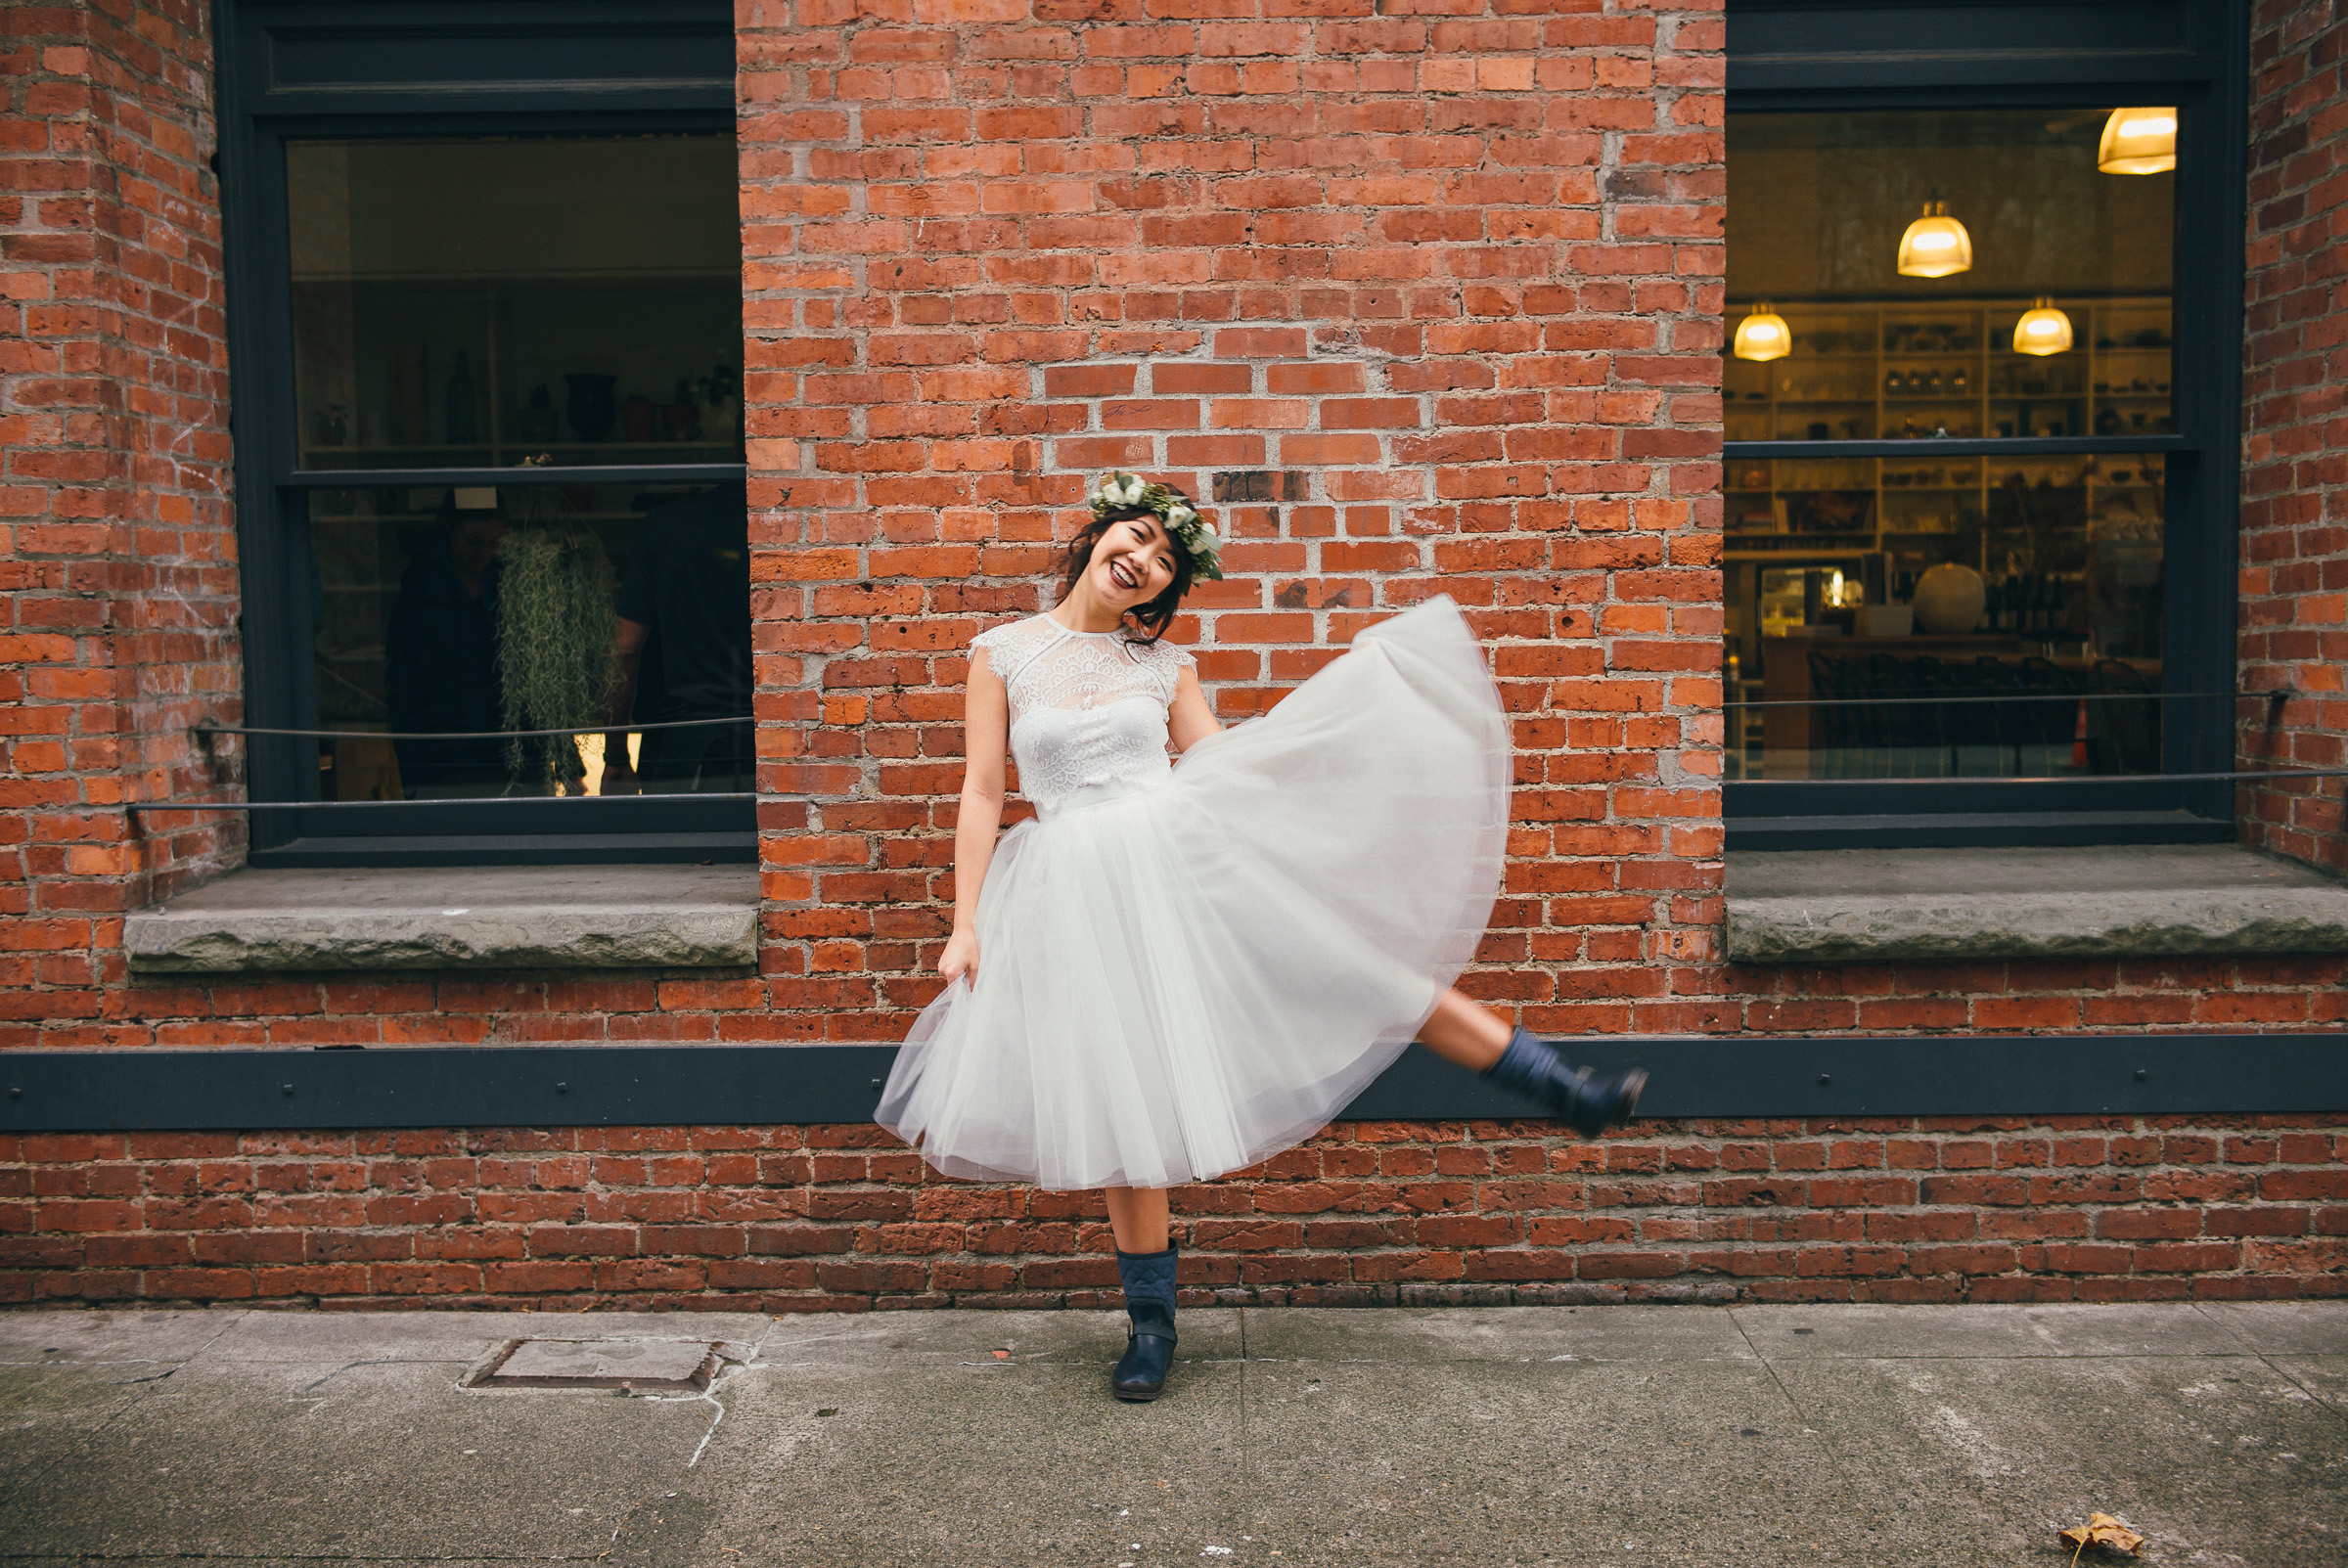 Bride Being Playful on Her Wedding Day in Pioneer Square, Seattle, WA